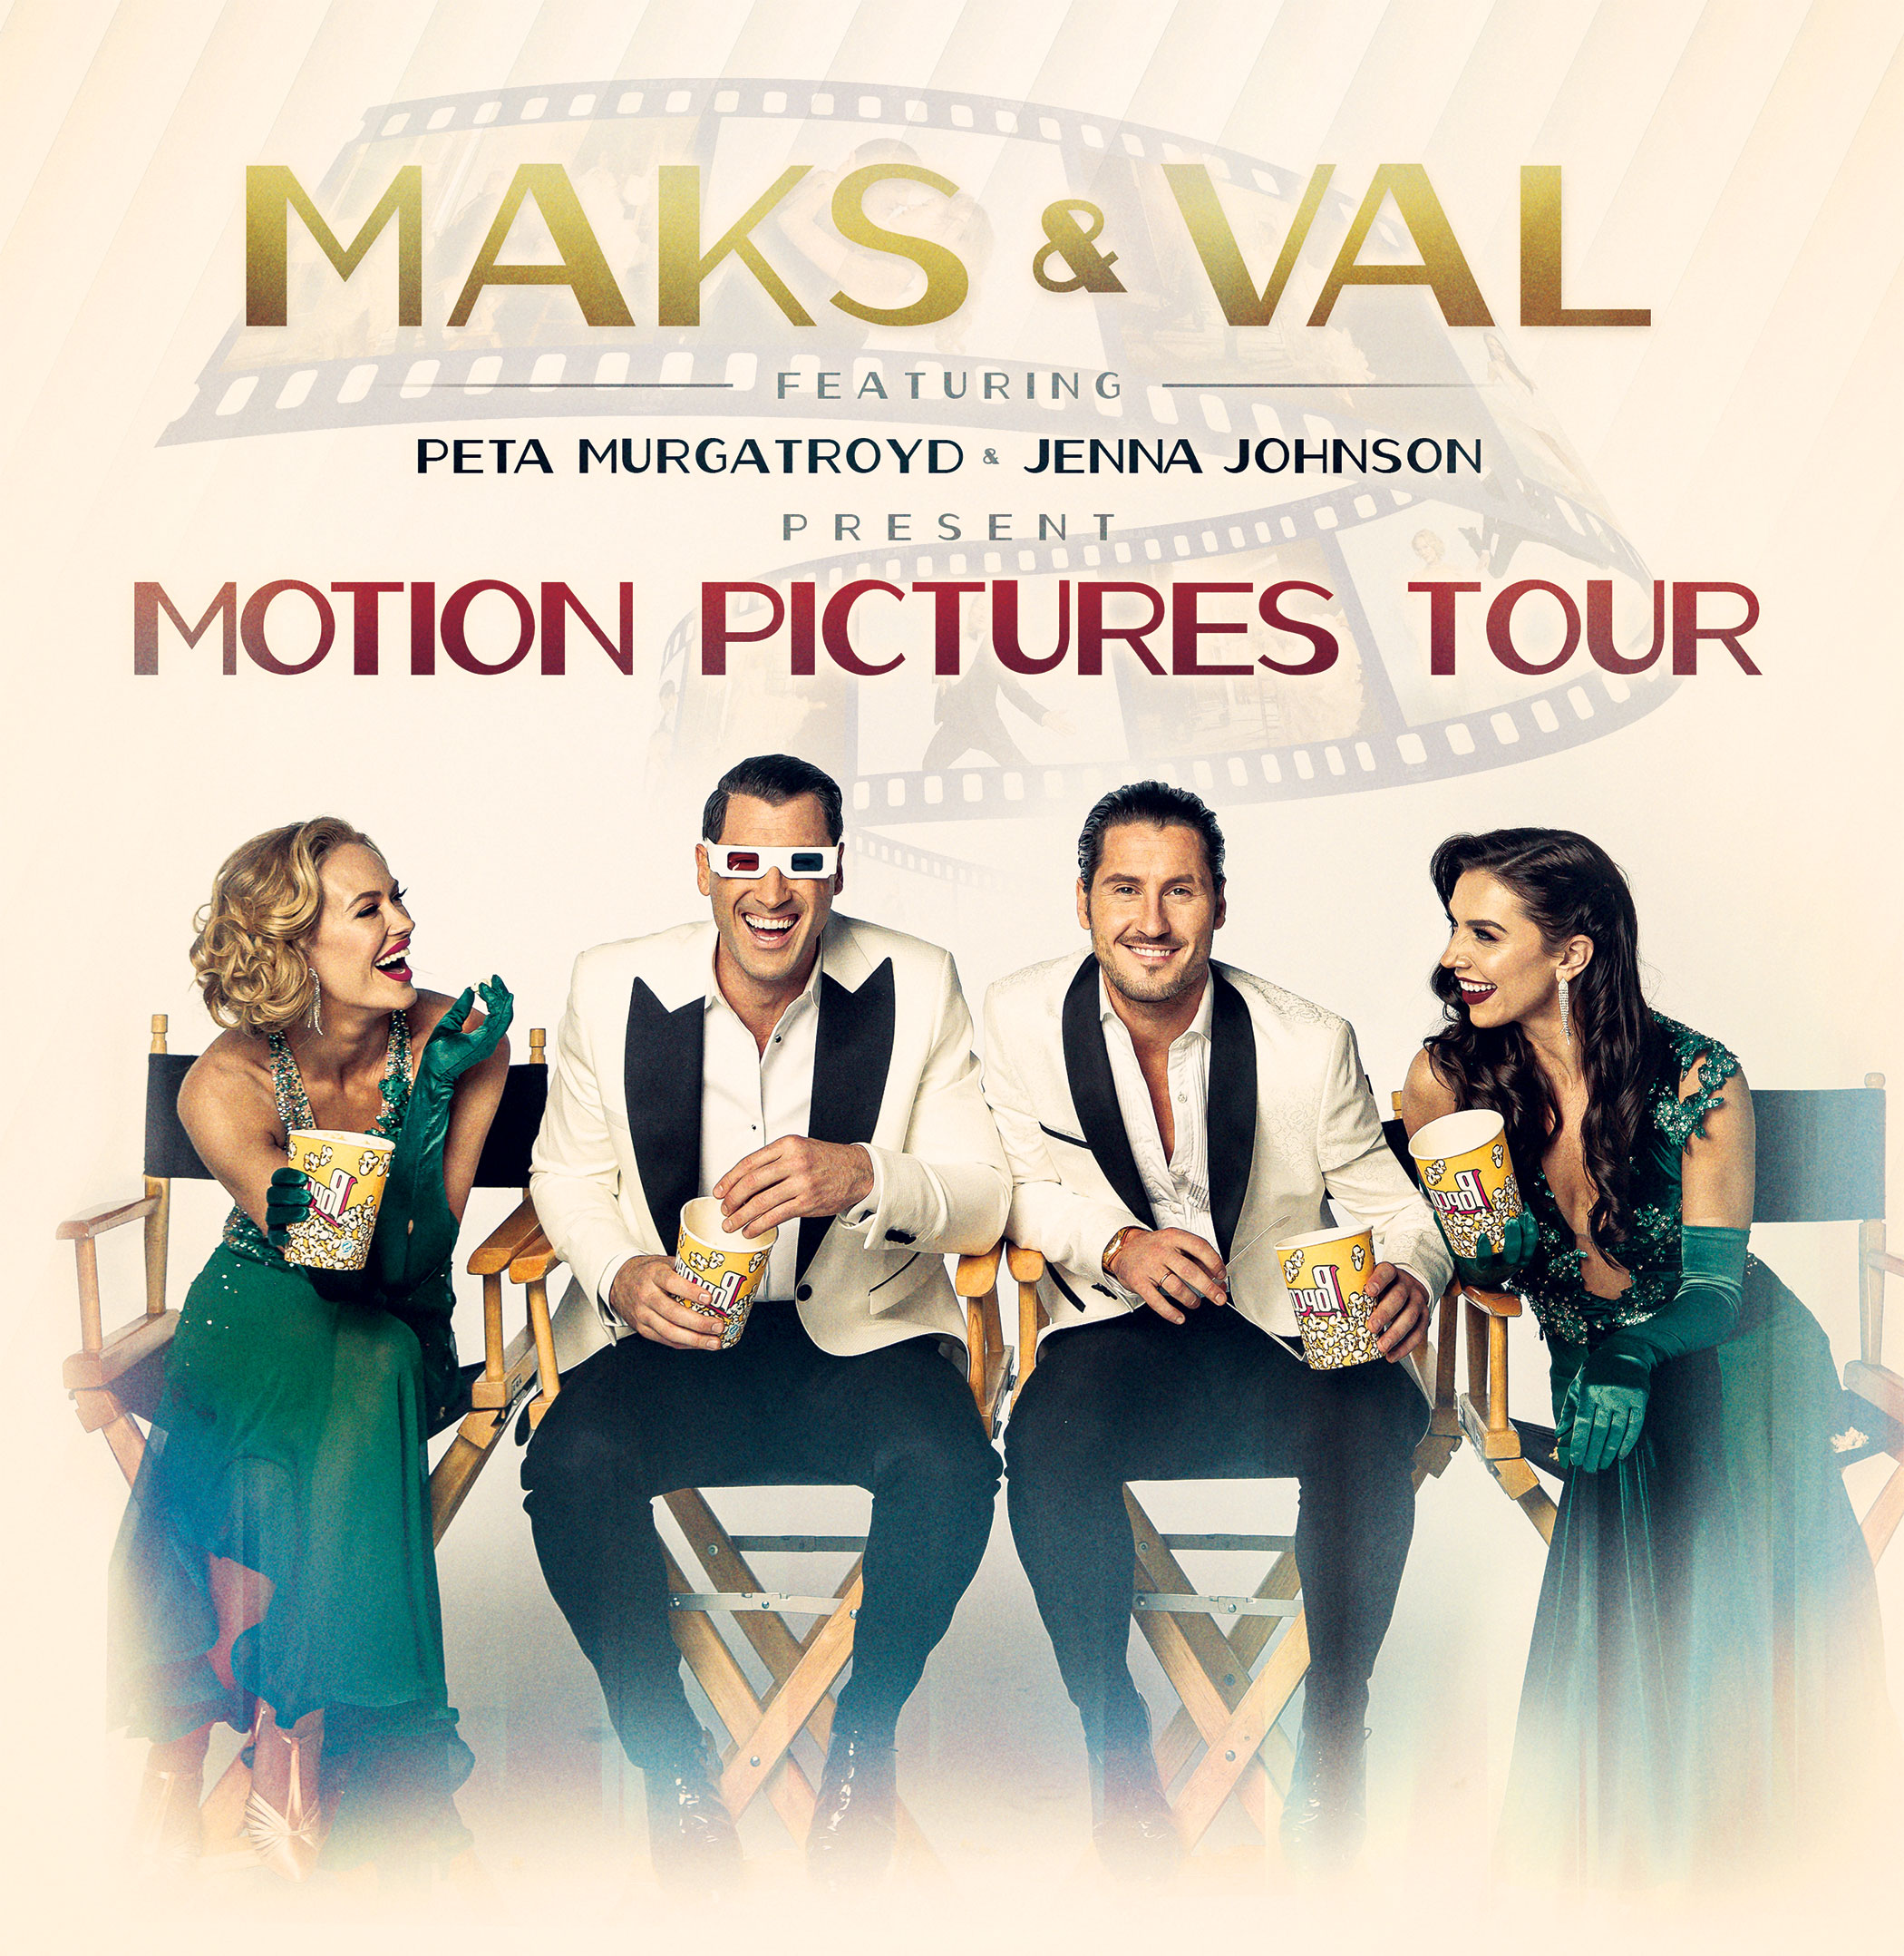 Maks & Val feat. Peta Murgatroyd and Jenna Johnson - The Motion Pictures Tour